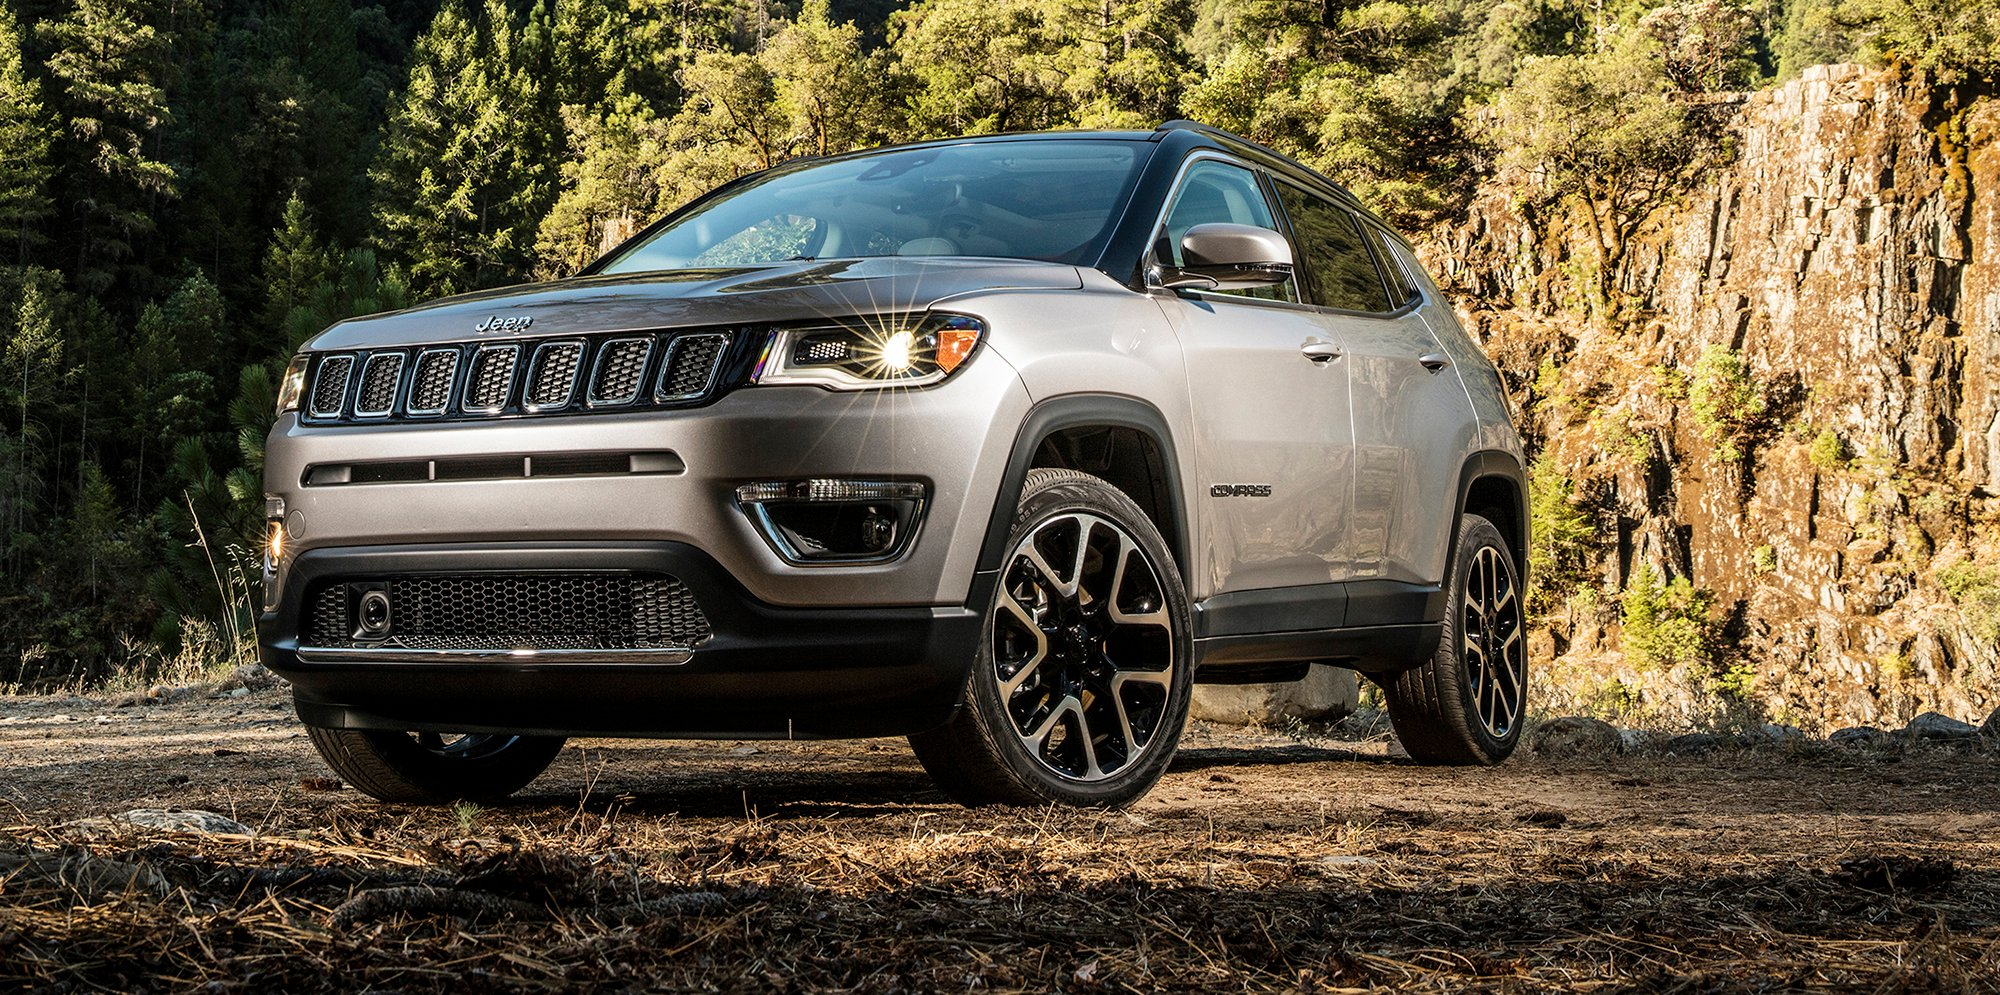 2018 jeep compass unveiled at la motor show here next - 2016 jeep compass interior lights ...